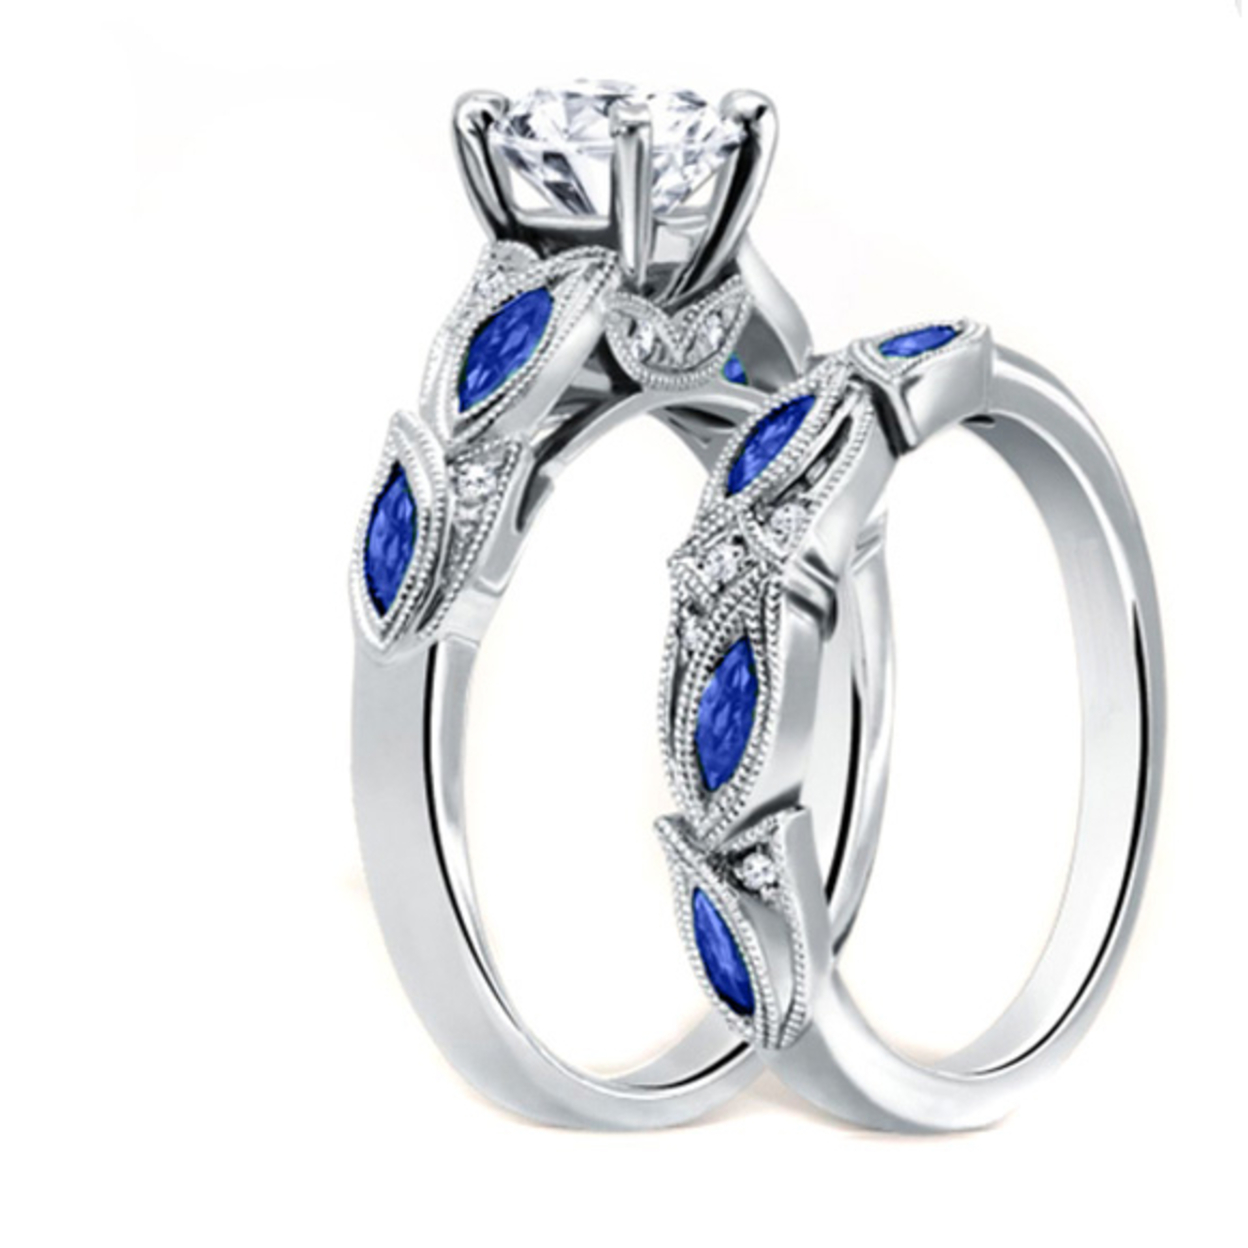 Sapphire Diamond Cut Ring And Band Set In 18k White Gold 6